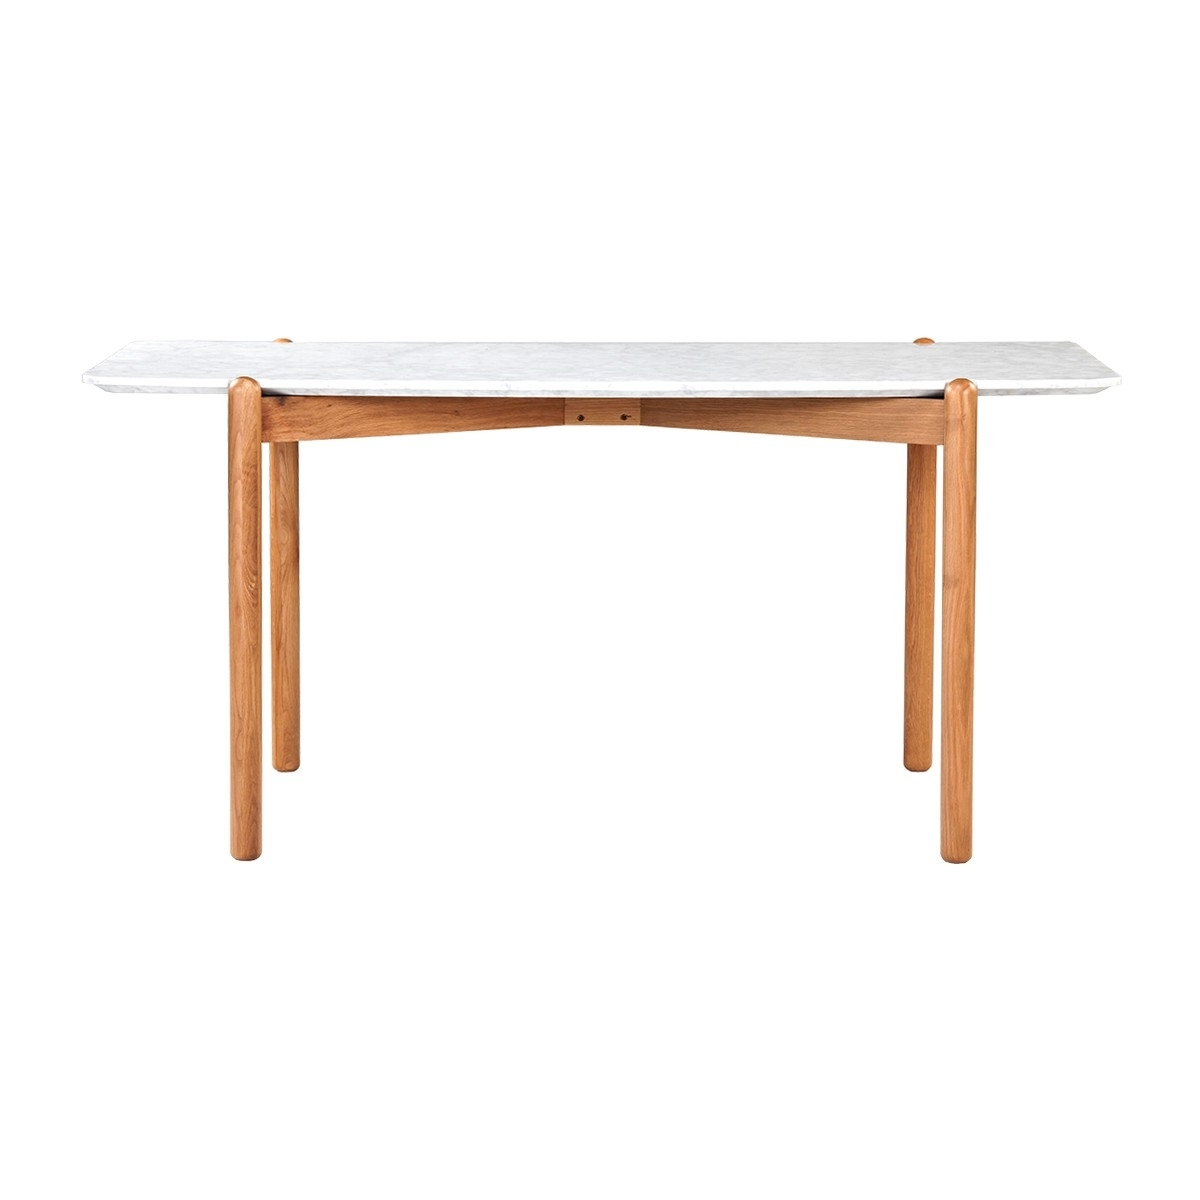 Most Recent Nora Dining Tables Pertaining To Life Interiors – Norah Marble Dining Table (Oak) – Modern Dining (View 9 of 25)